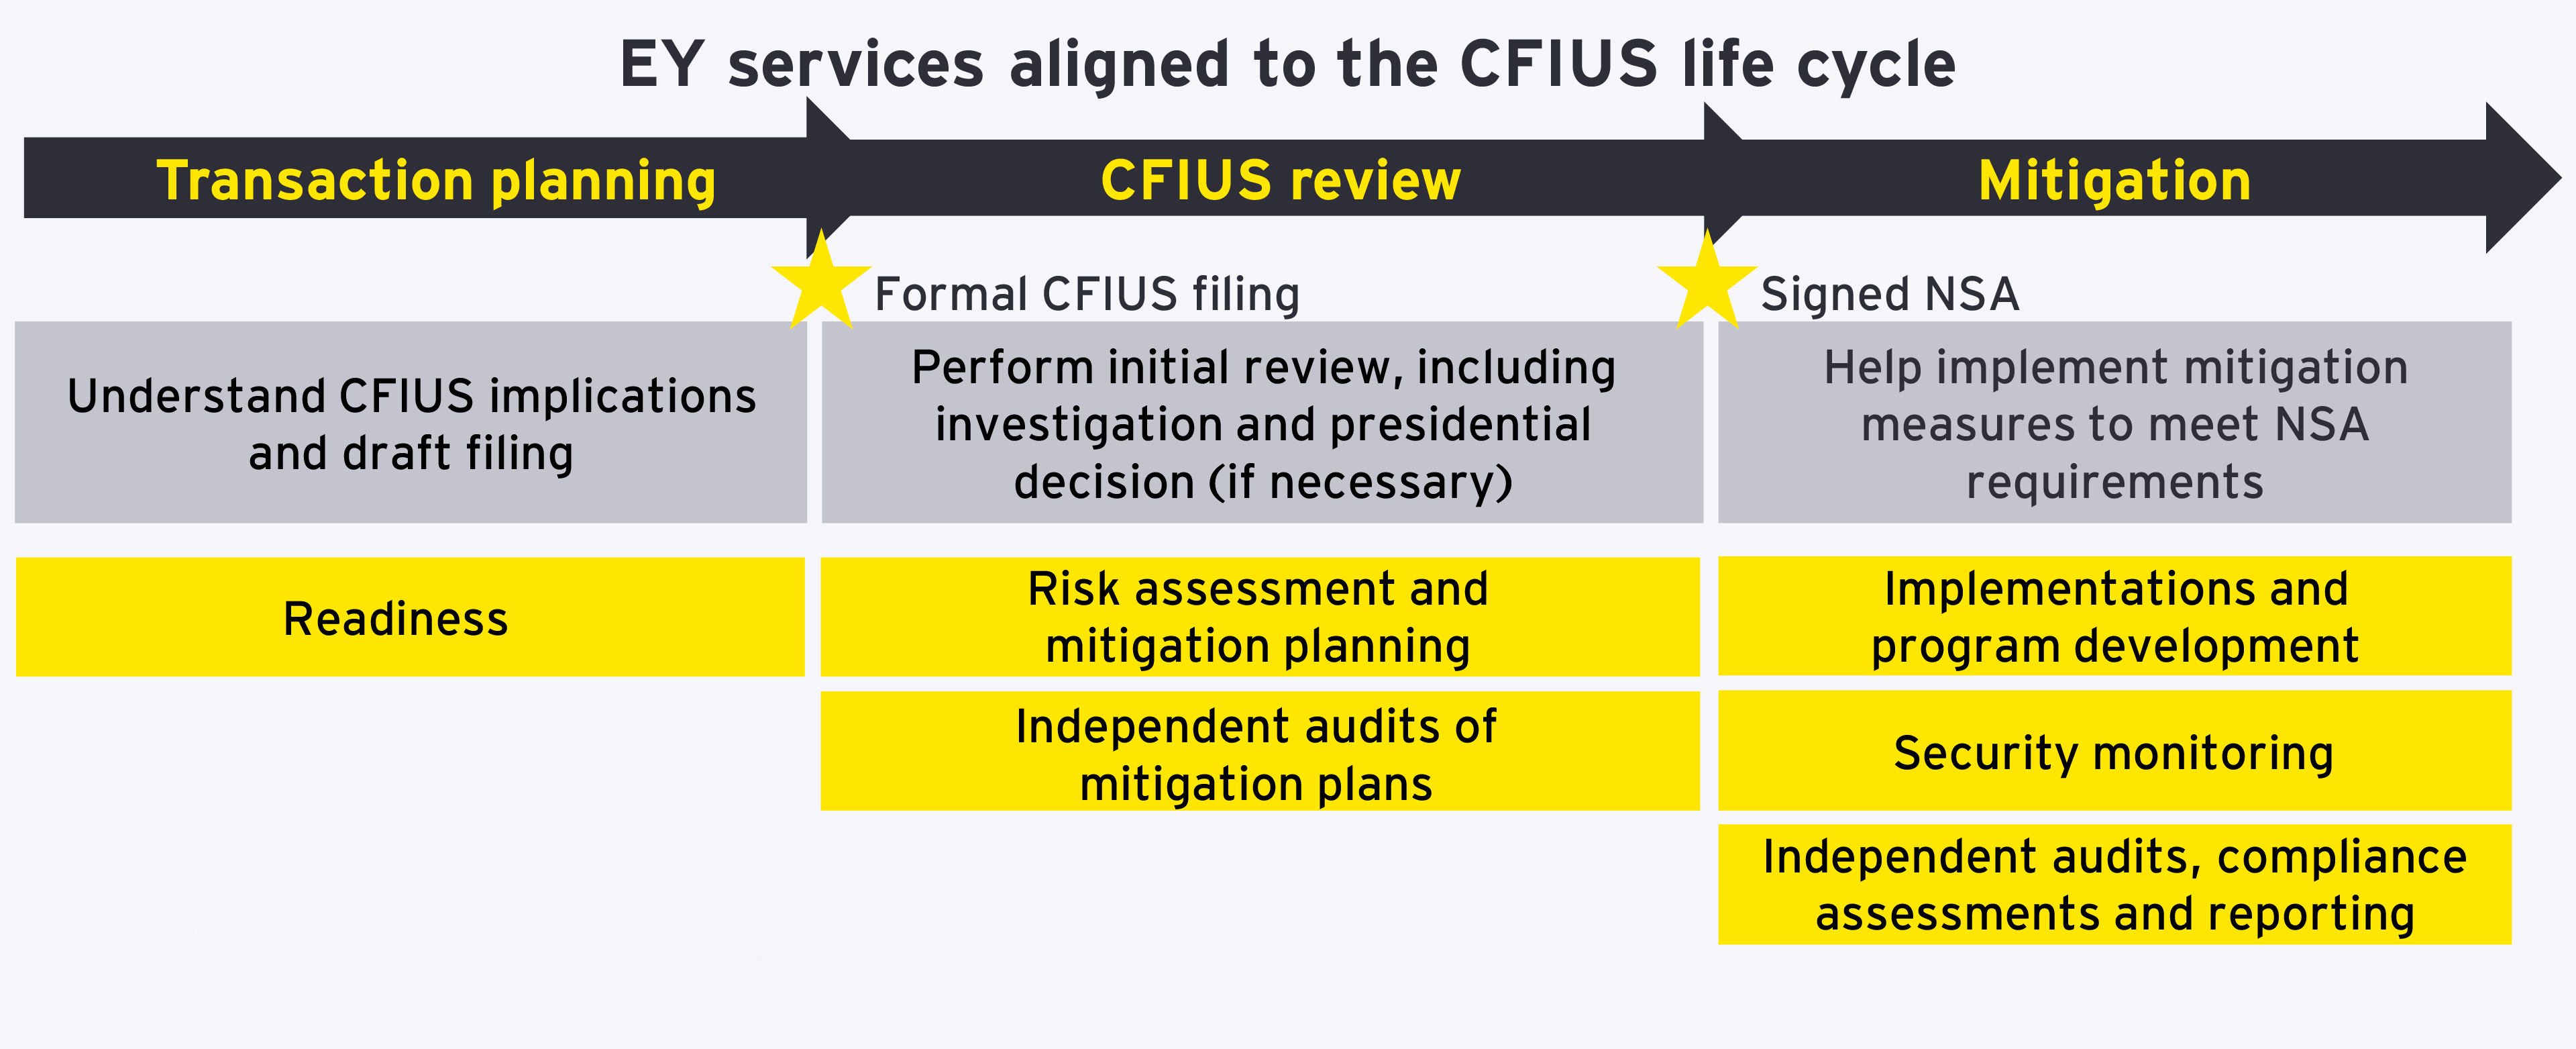 EY services aligned to the CIFUS life cycle